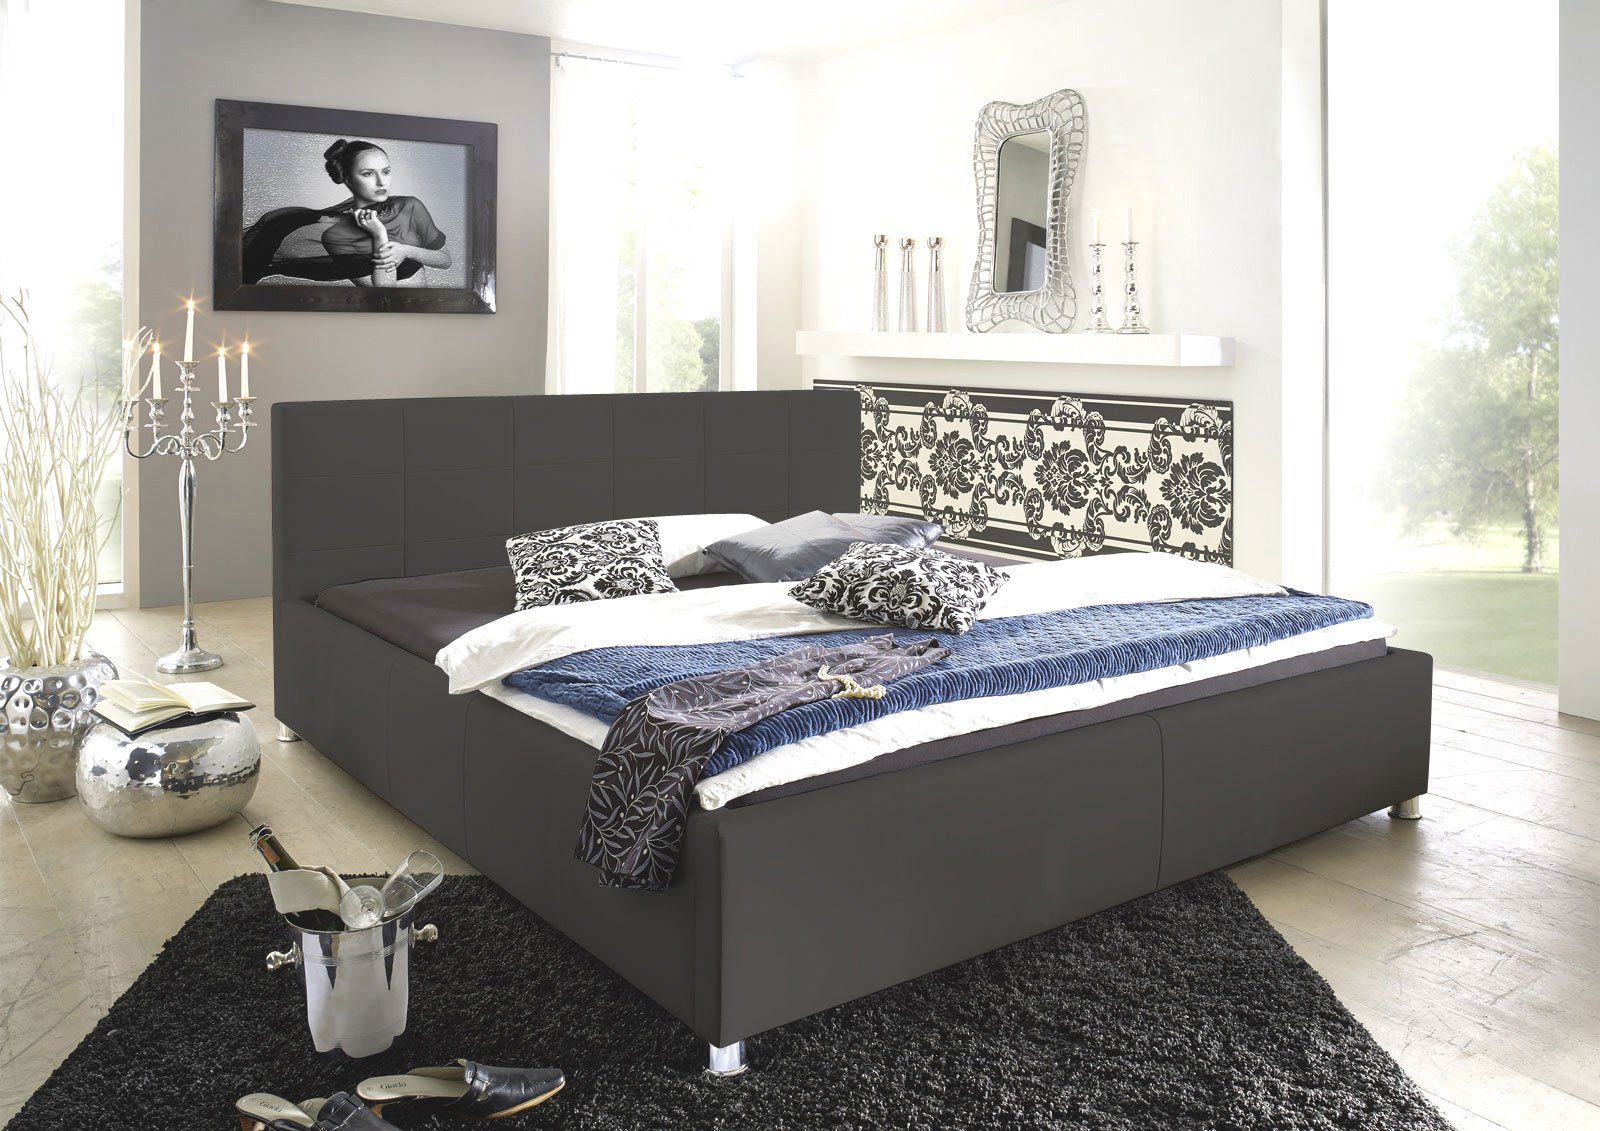 sam polsterbett 140 x 200 cm grau doppelbett kira demn chst. Black Bedroom Furniture Sets. Home Design Ideas